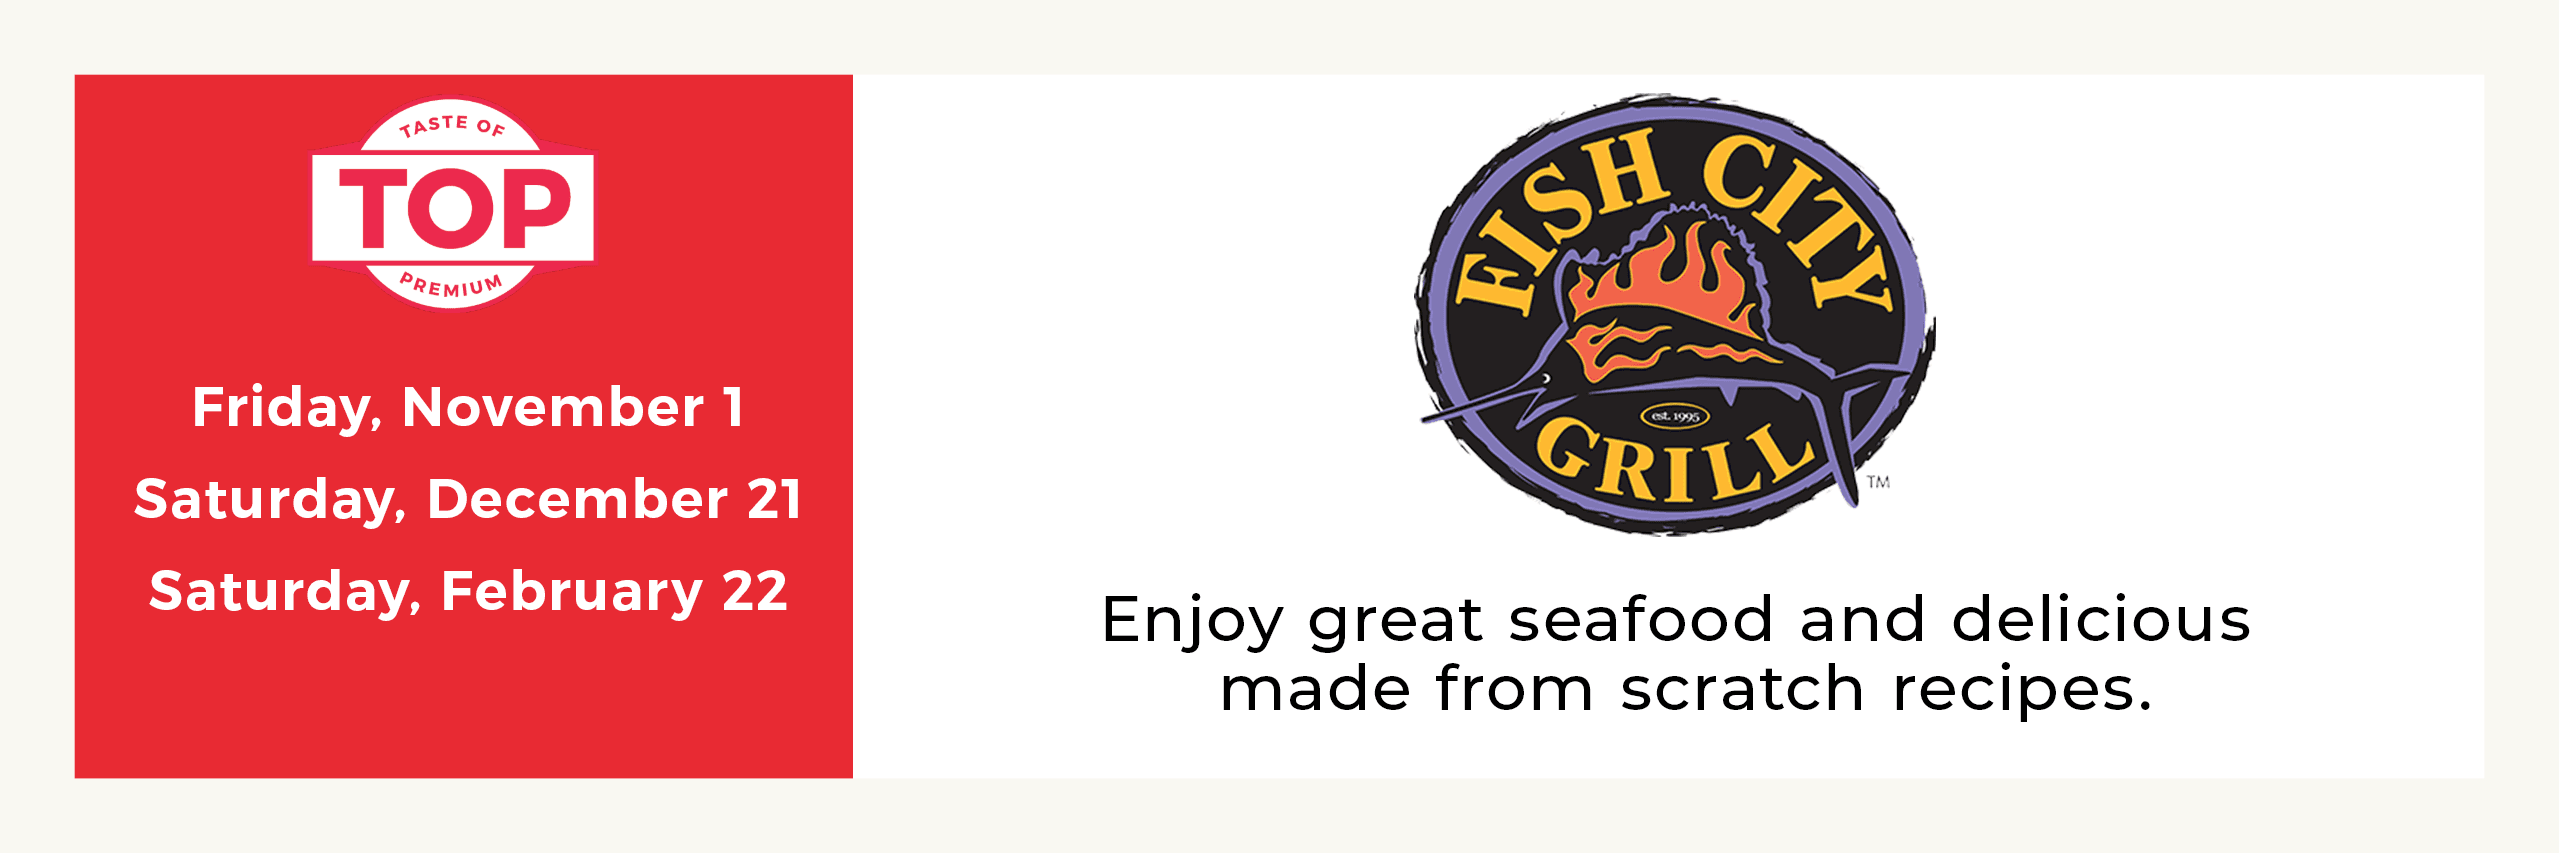 Fish City Grill Meal Service Dates Opens in new window